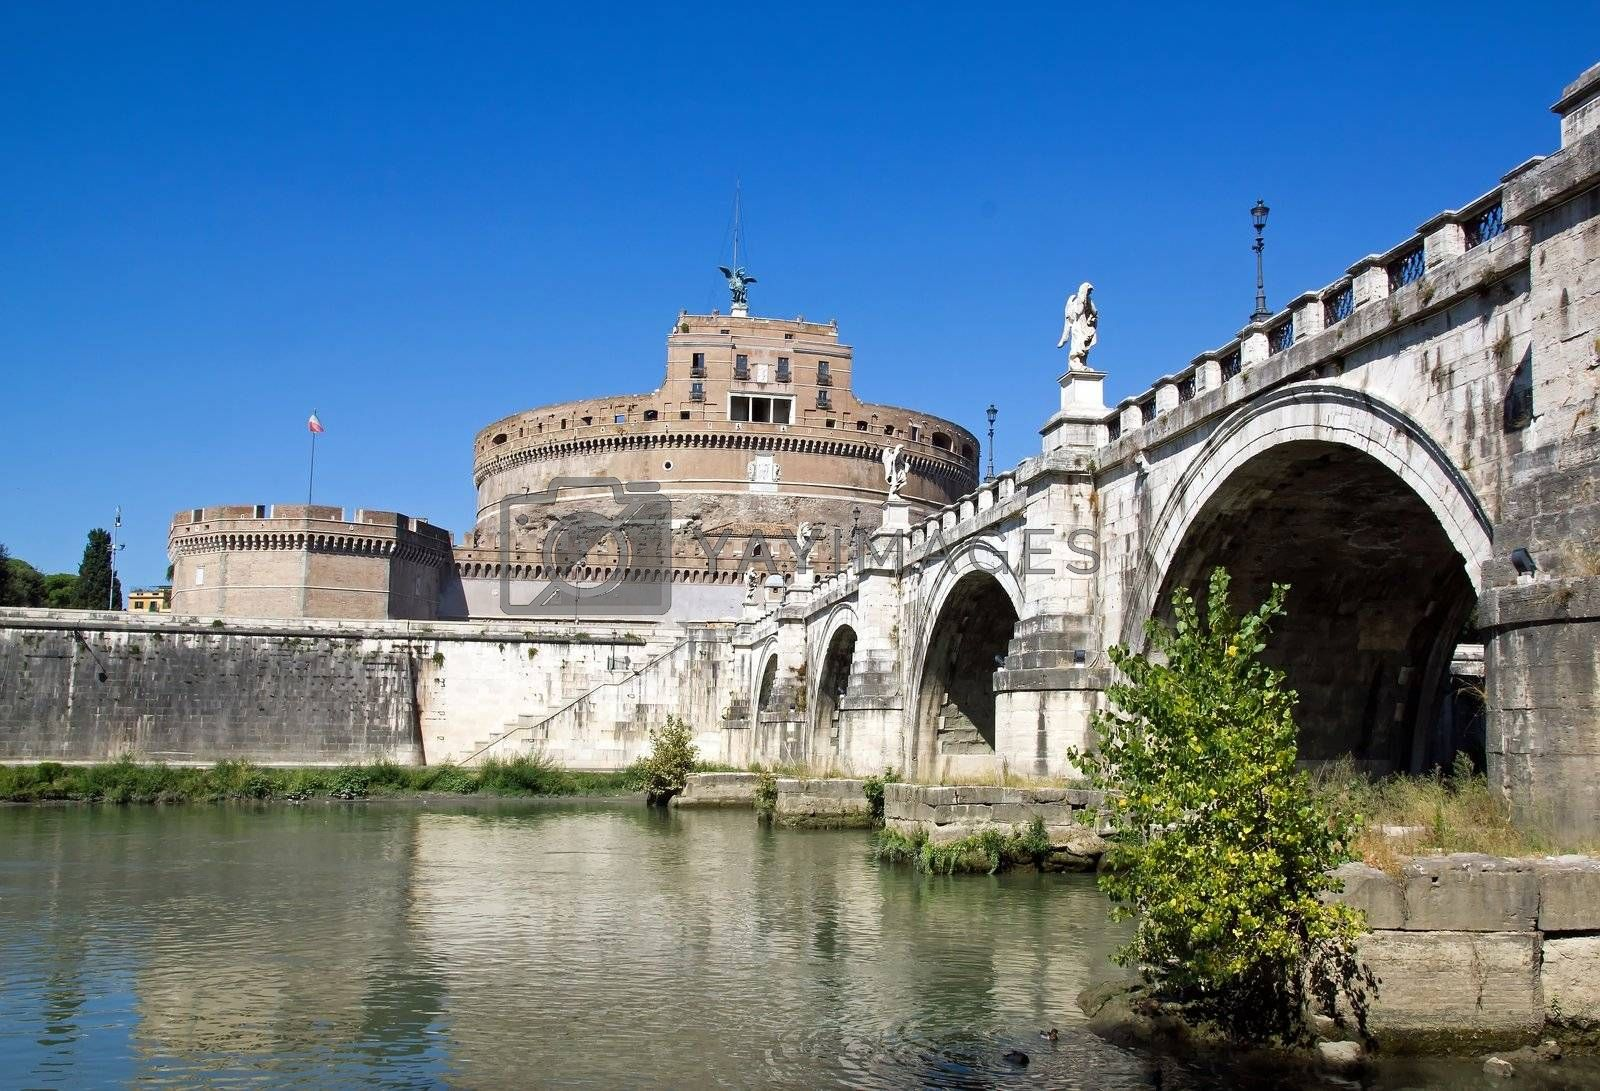 St Angel Castle and bridge, seen from one bank of the Tiber (Rome Italy)